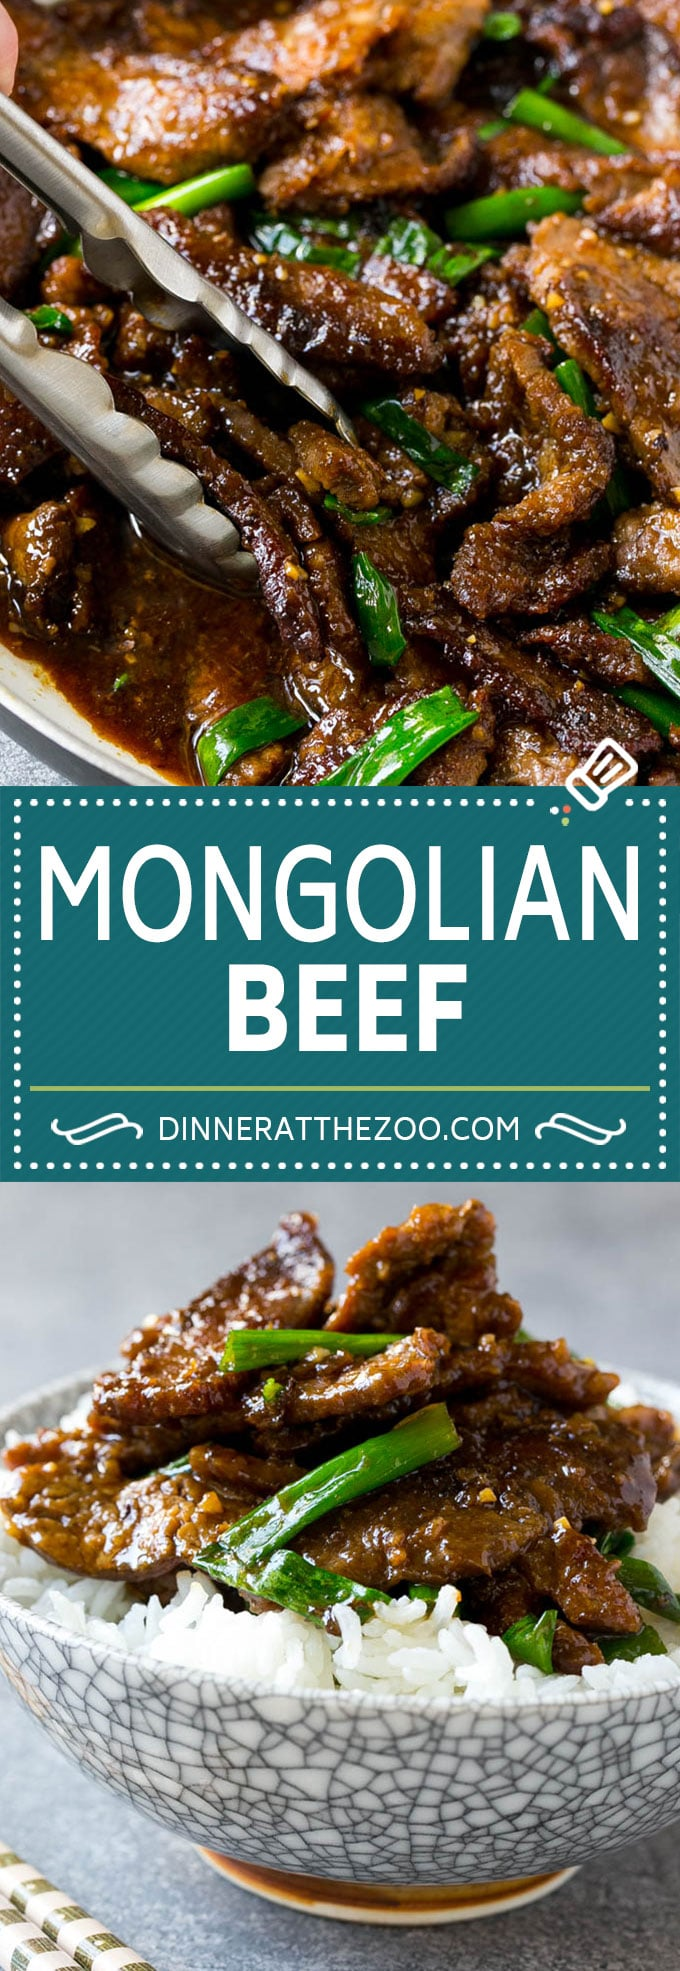 Mongolian Beef Recipe | Beef Stir Fry #steak #beef #stirfry #chinesefood #dinner #dinneratthezoo